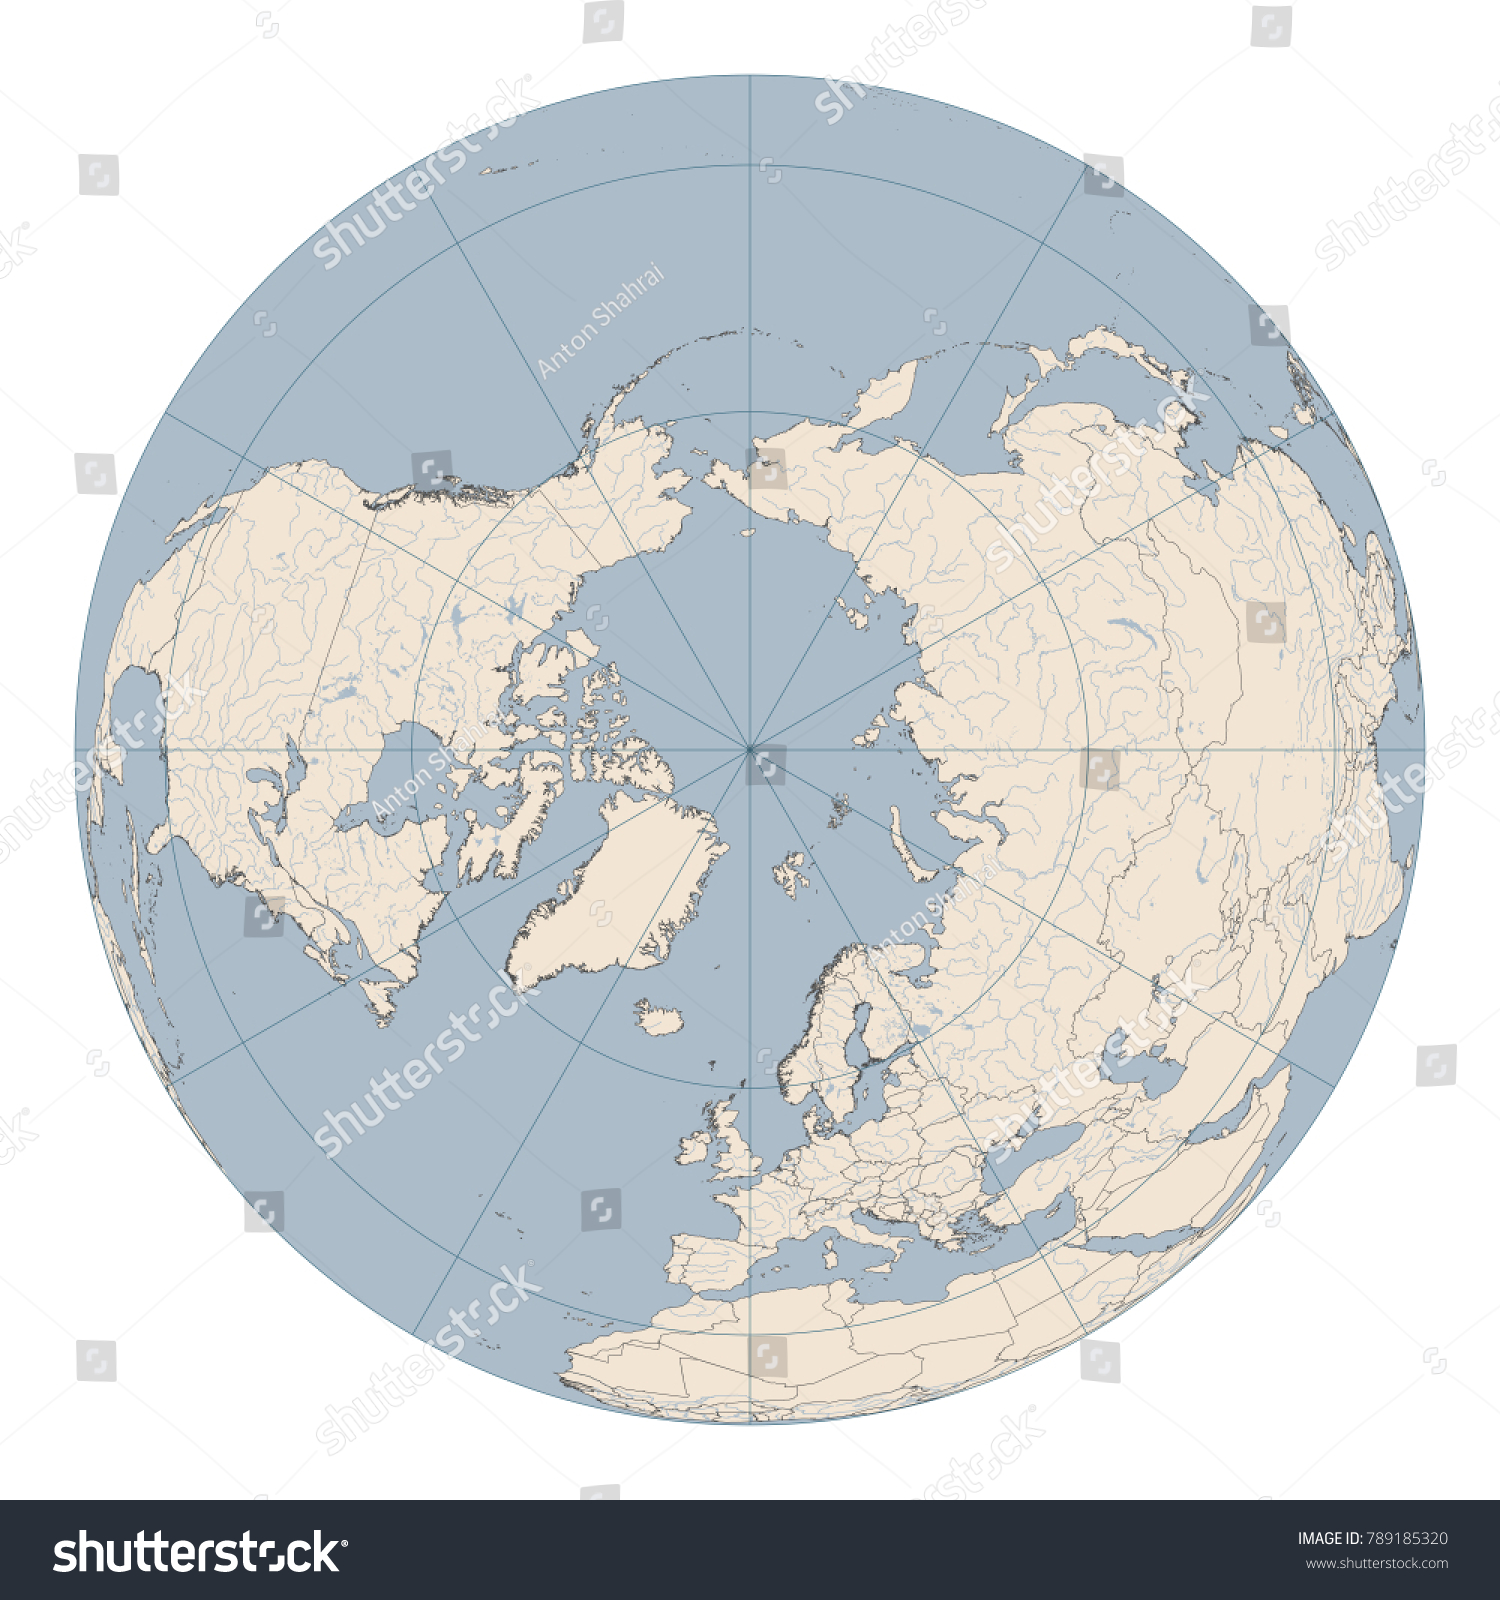 North pole map huge detailed map stock vector 2018 789185320 north pole map huge and detailed map of northern hemisphere of earth in orthographic projection gumiabroncs Choice Image